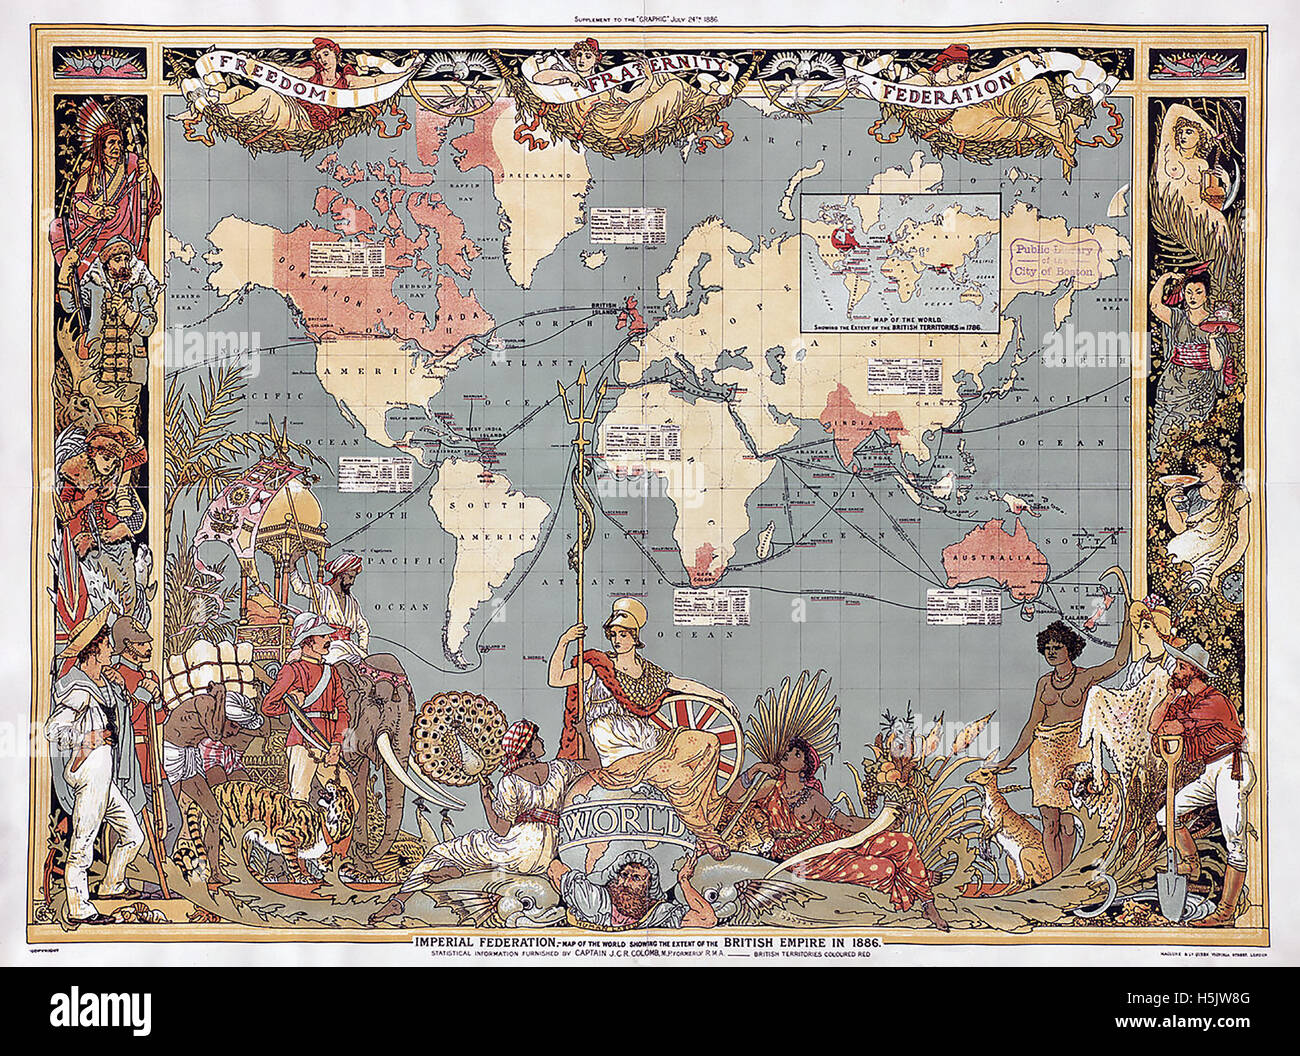 BRITISH EMPIRE MAP 1886 as a supplement to The Graphic magazine in that year - Stock Image